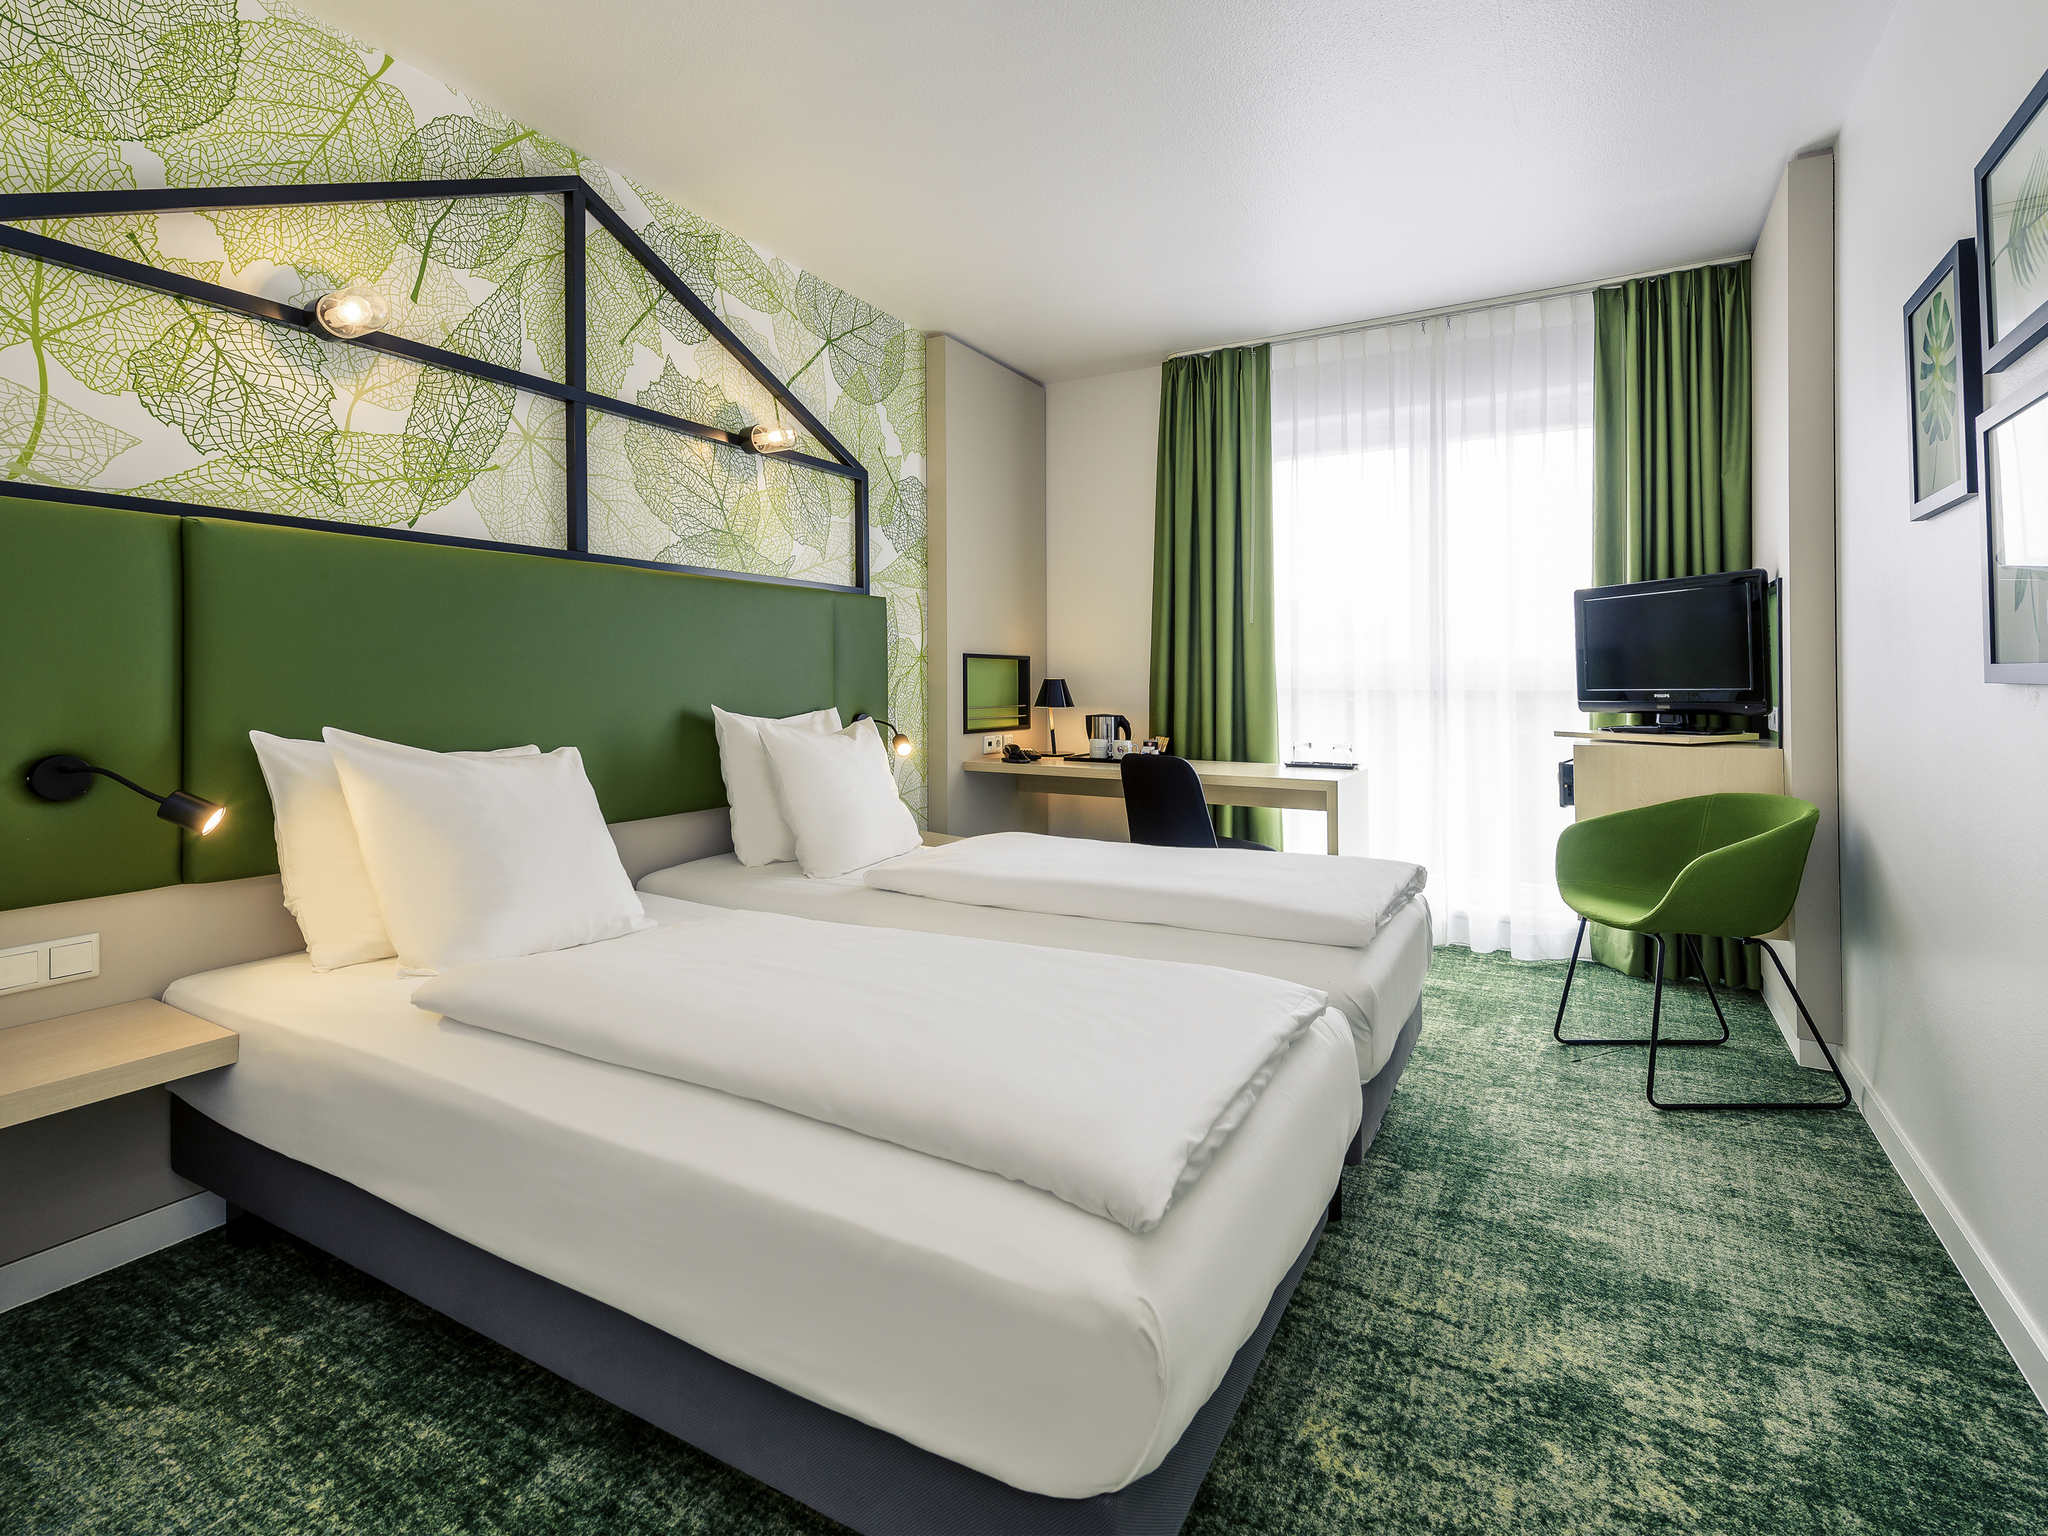 Hotel in hannover mercure hotel hannover mitte buchen for Hotel hannover